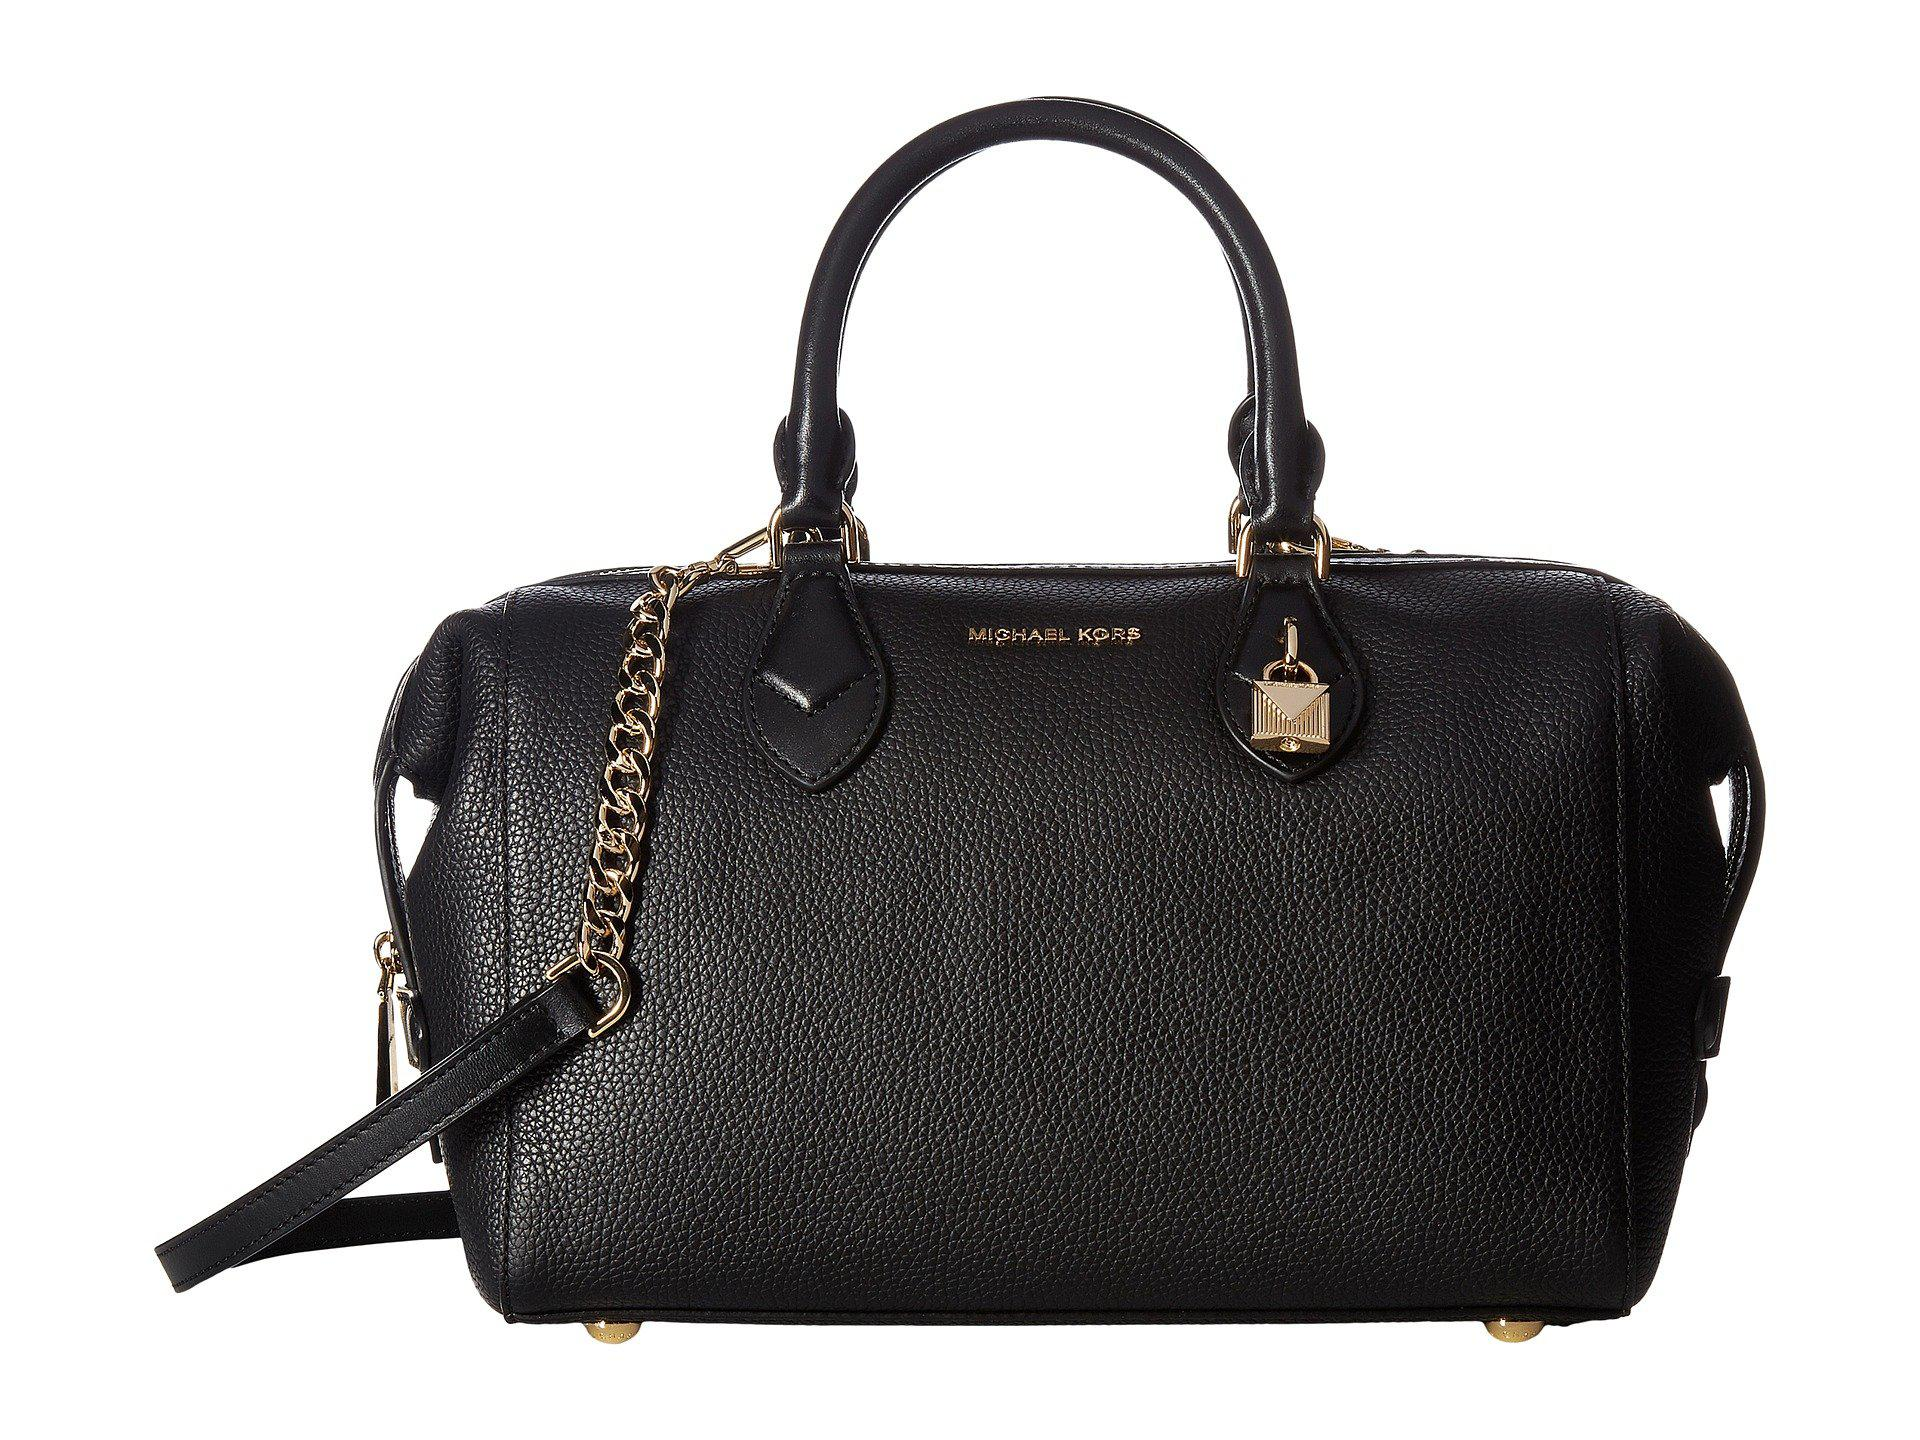 141cac4e2050 ... best price previously sold at zappos womens black satchels womens michael  kors grayson c7ed0 9f3a5